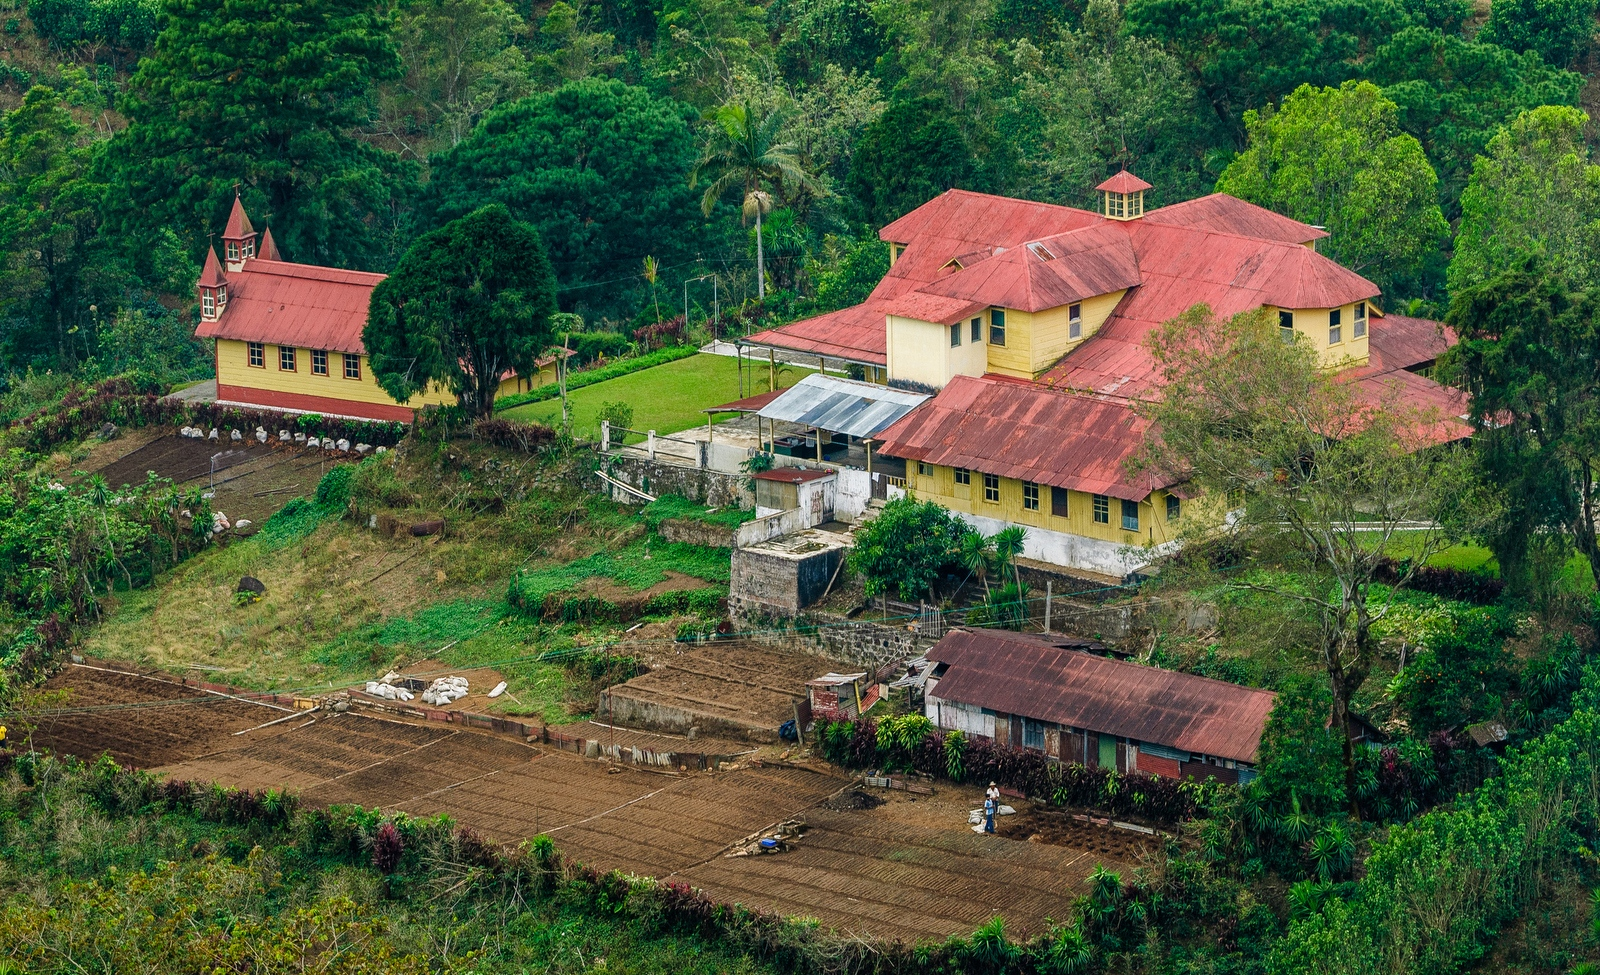 Finca Dos Marias, a coffee plantation in the San Marcos region of Guatemala, has been owned and operated by the same family for three generations.